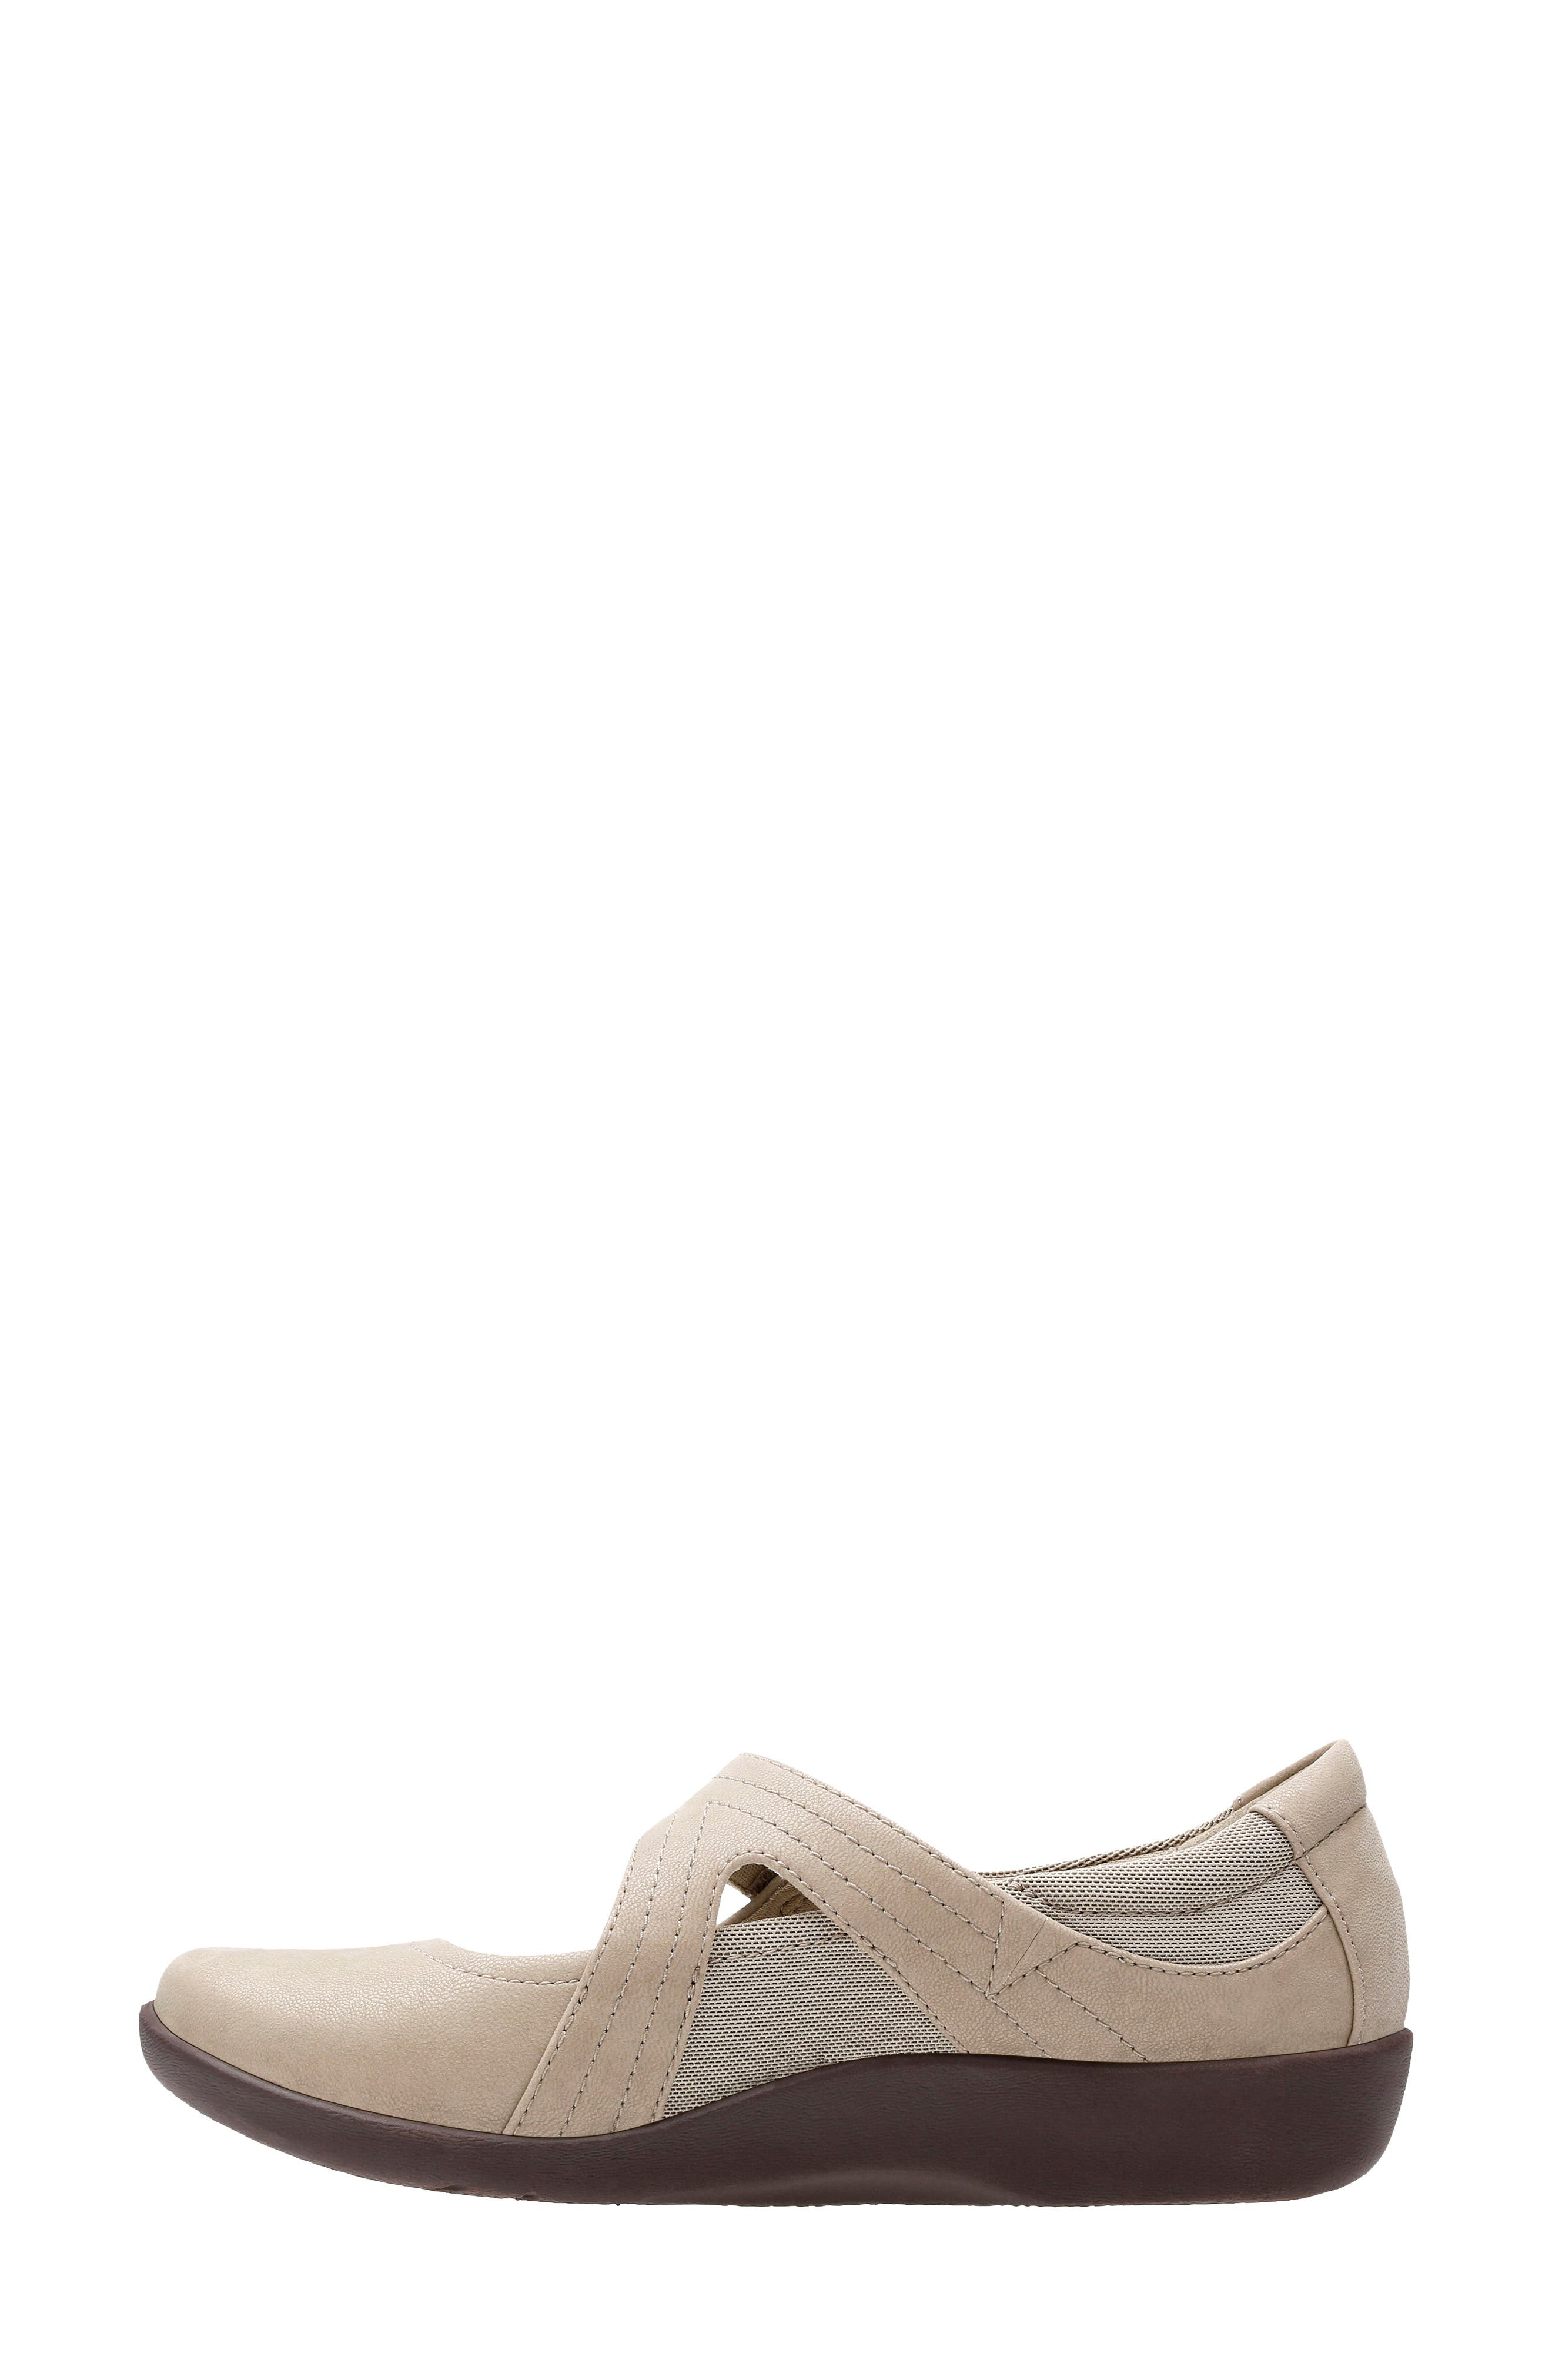 CLARKS<SUP>®</SUP>,                             Sillian Bella Mary Jane Flat,                             Alternate thumbnail 7, color,                             SAND SYNTHETIC NUBUCK